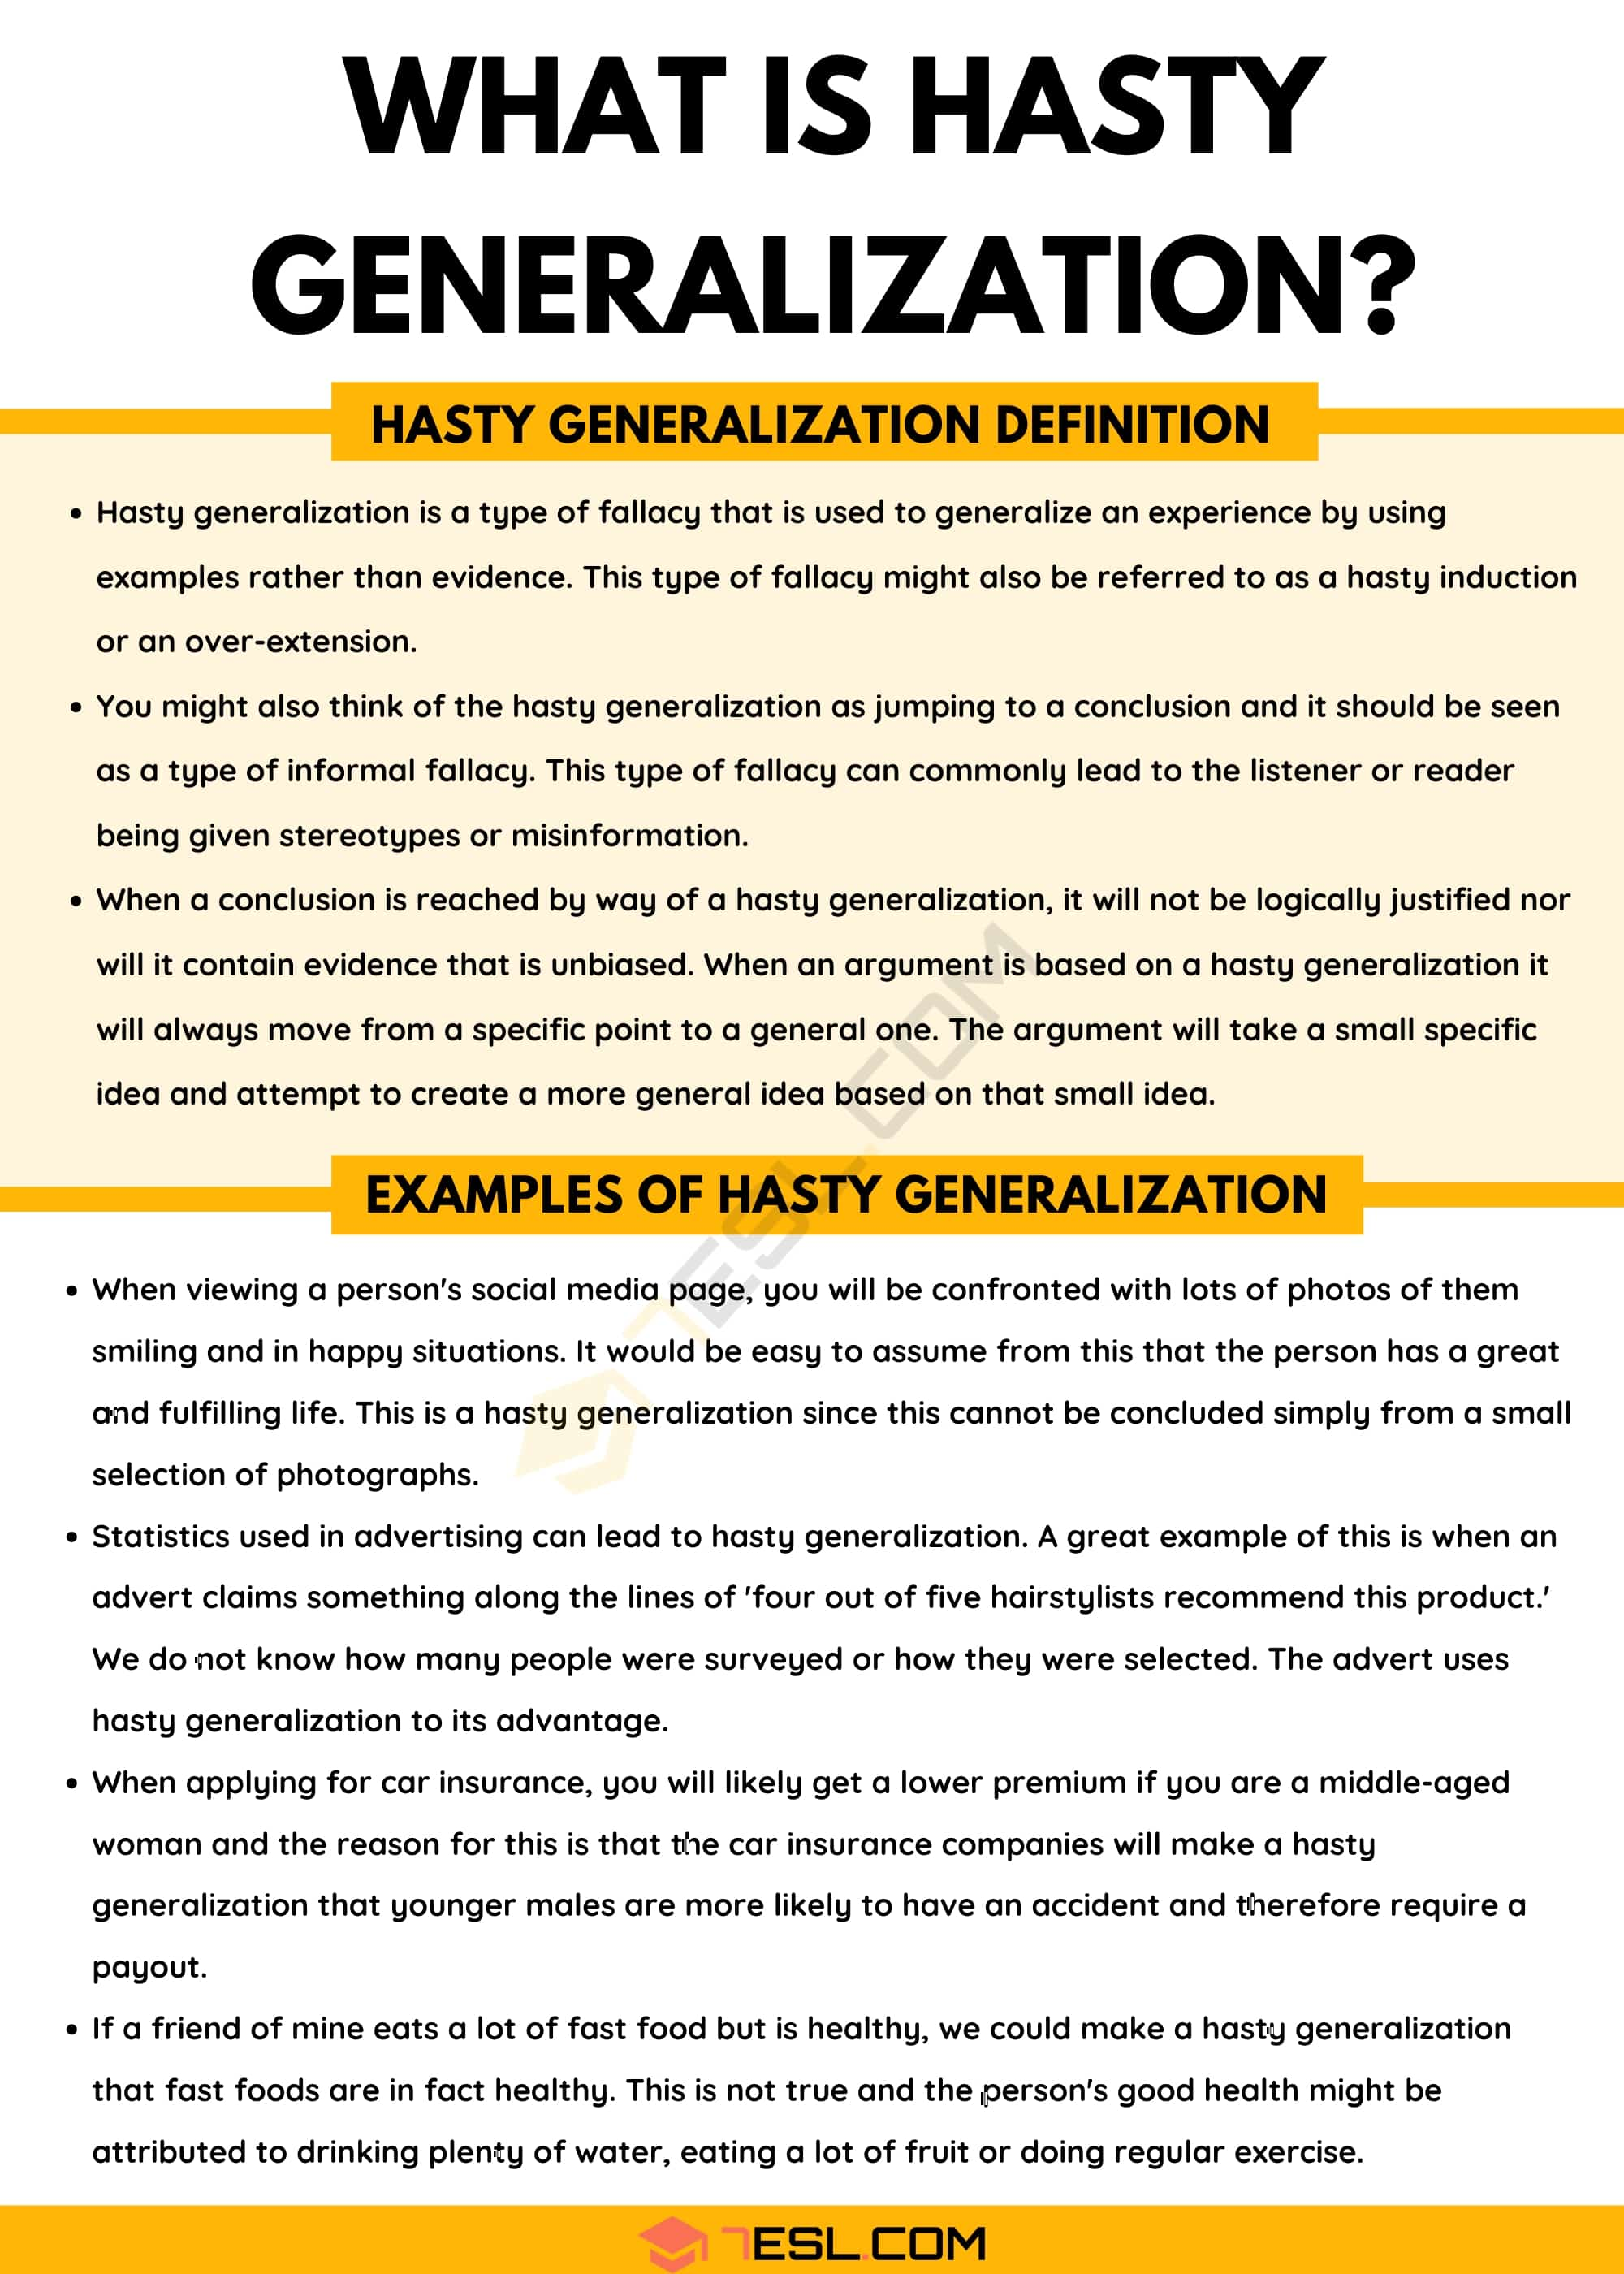 Hasty Generalization: Definition with Useful Examples of Hasty Generalization